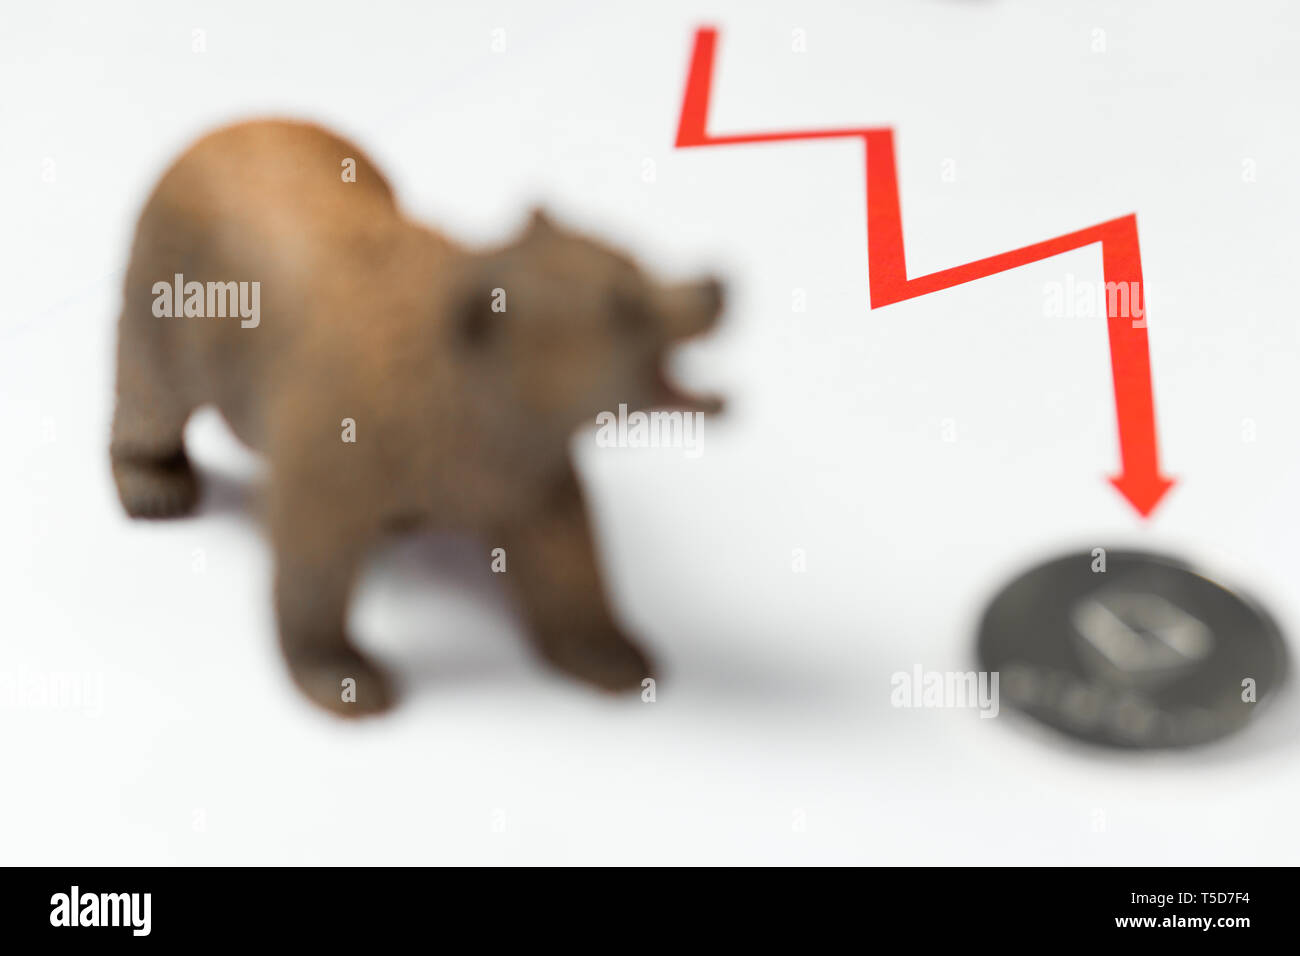 Cryptocurrency Ethereum price crash and drop as a bear trend concept - Stock Image